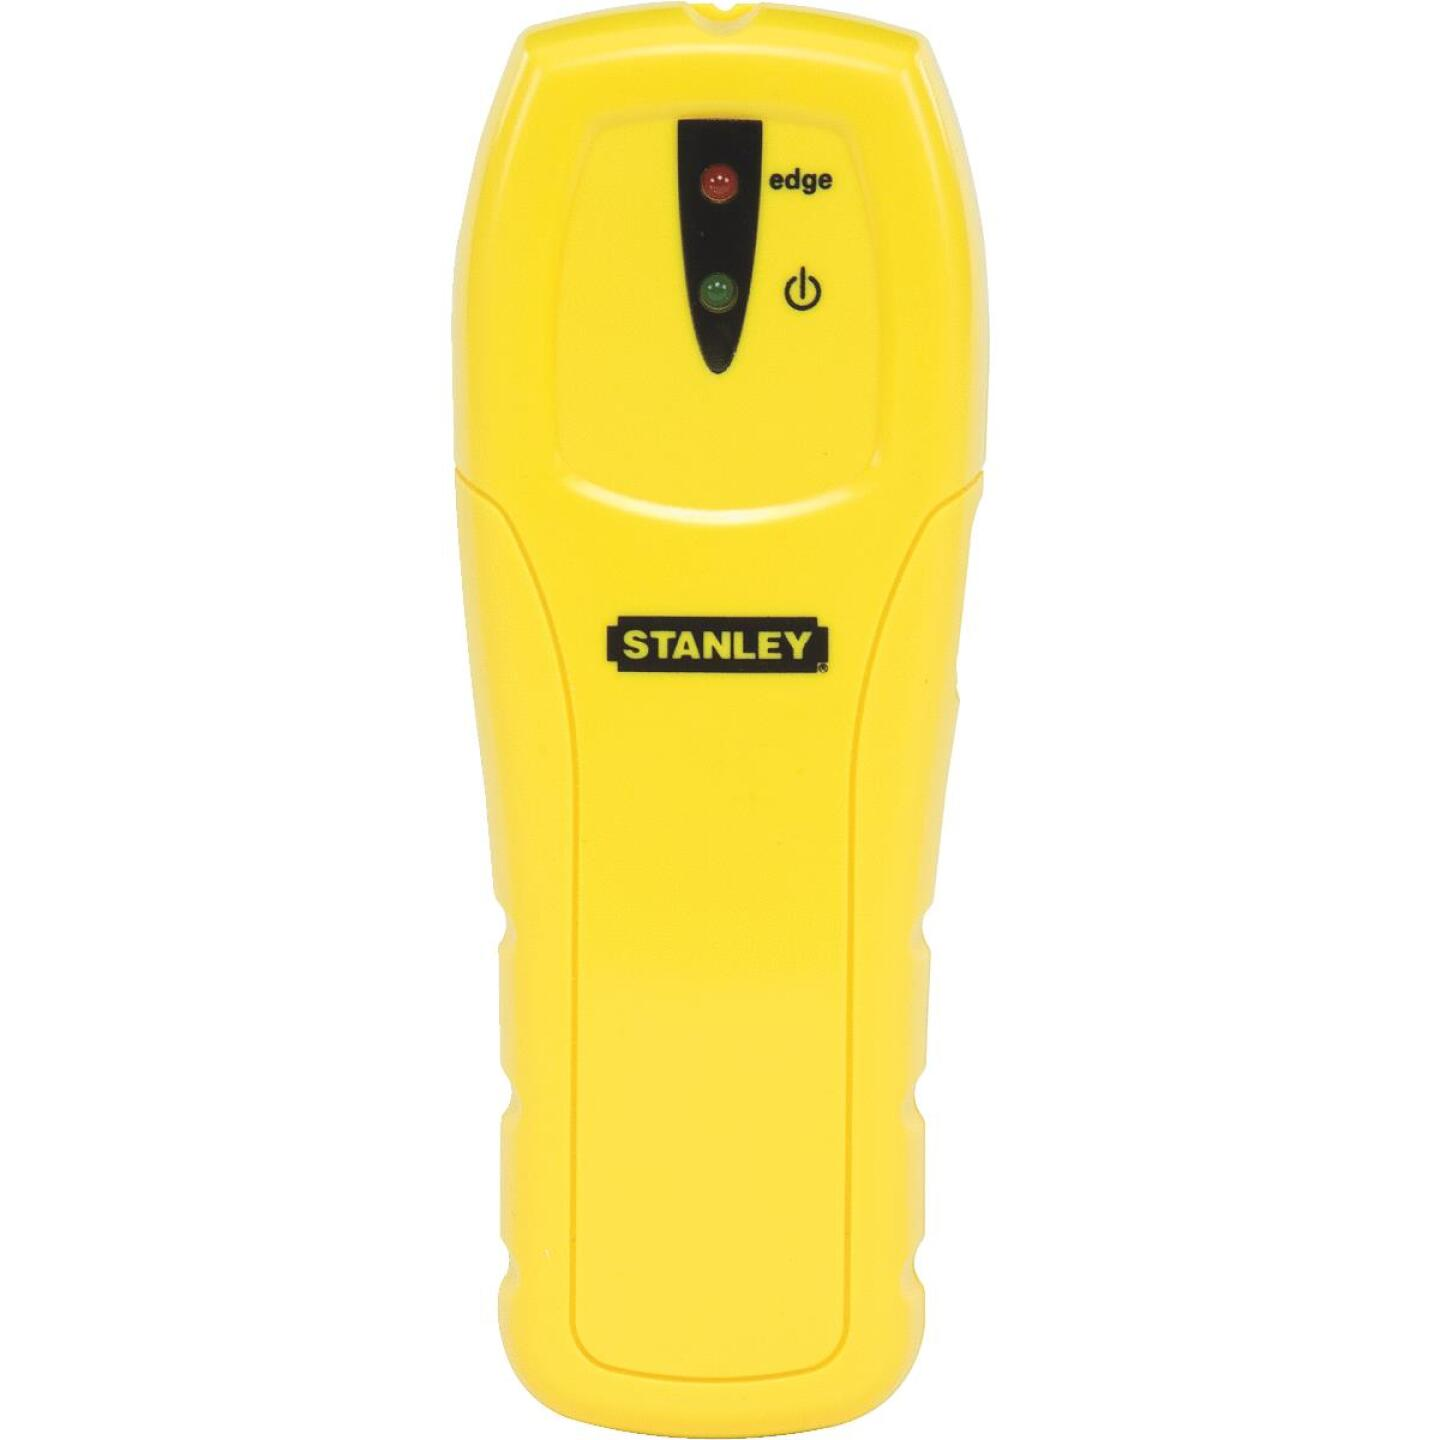 Stanley S50 Edge-Detect Stud Finder Image 3